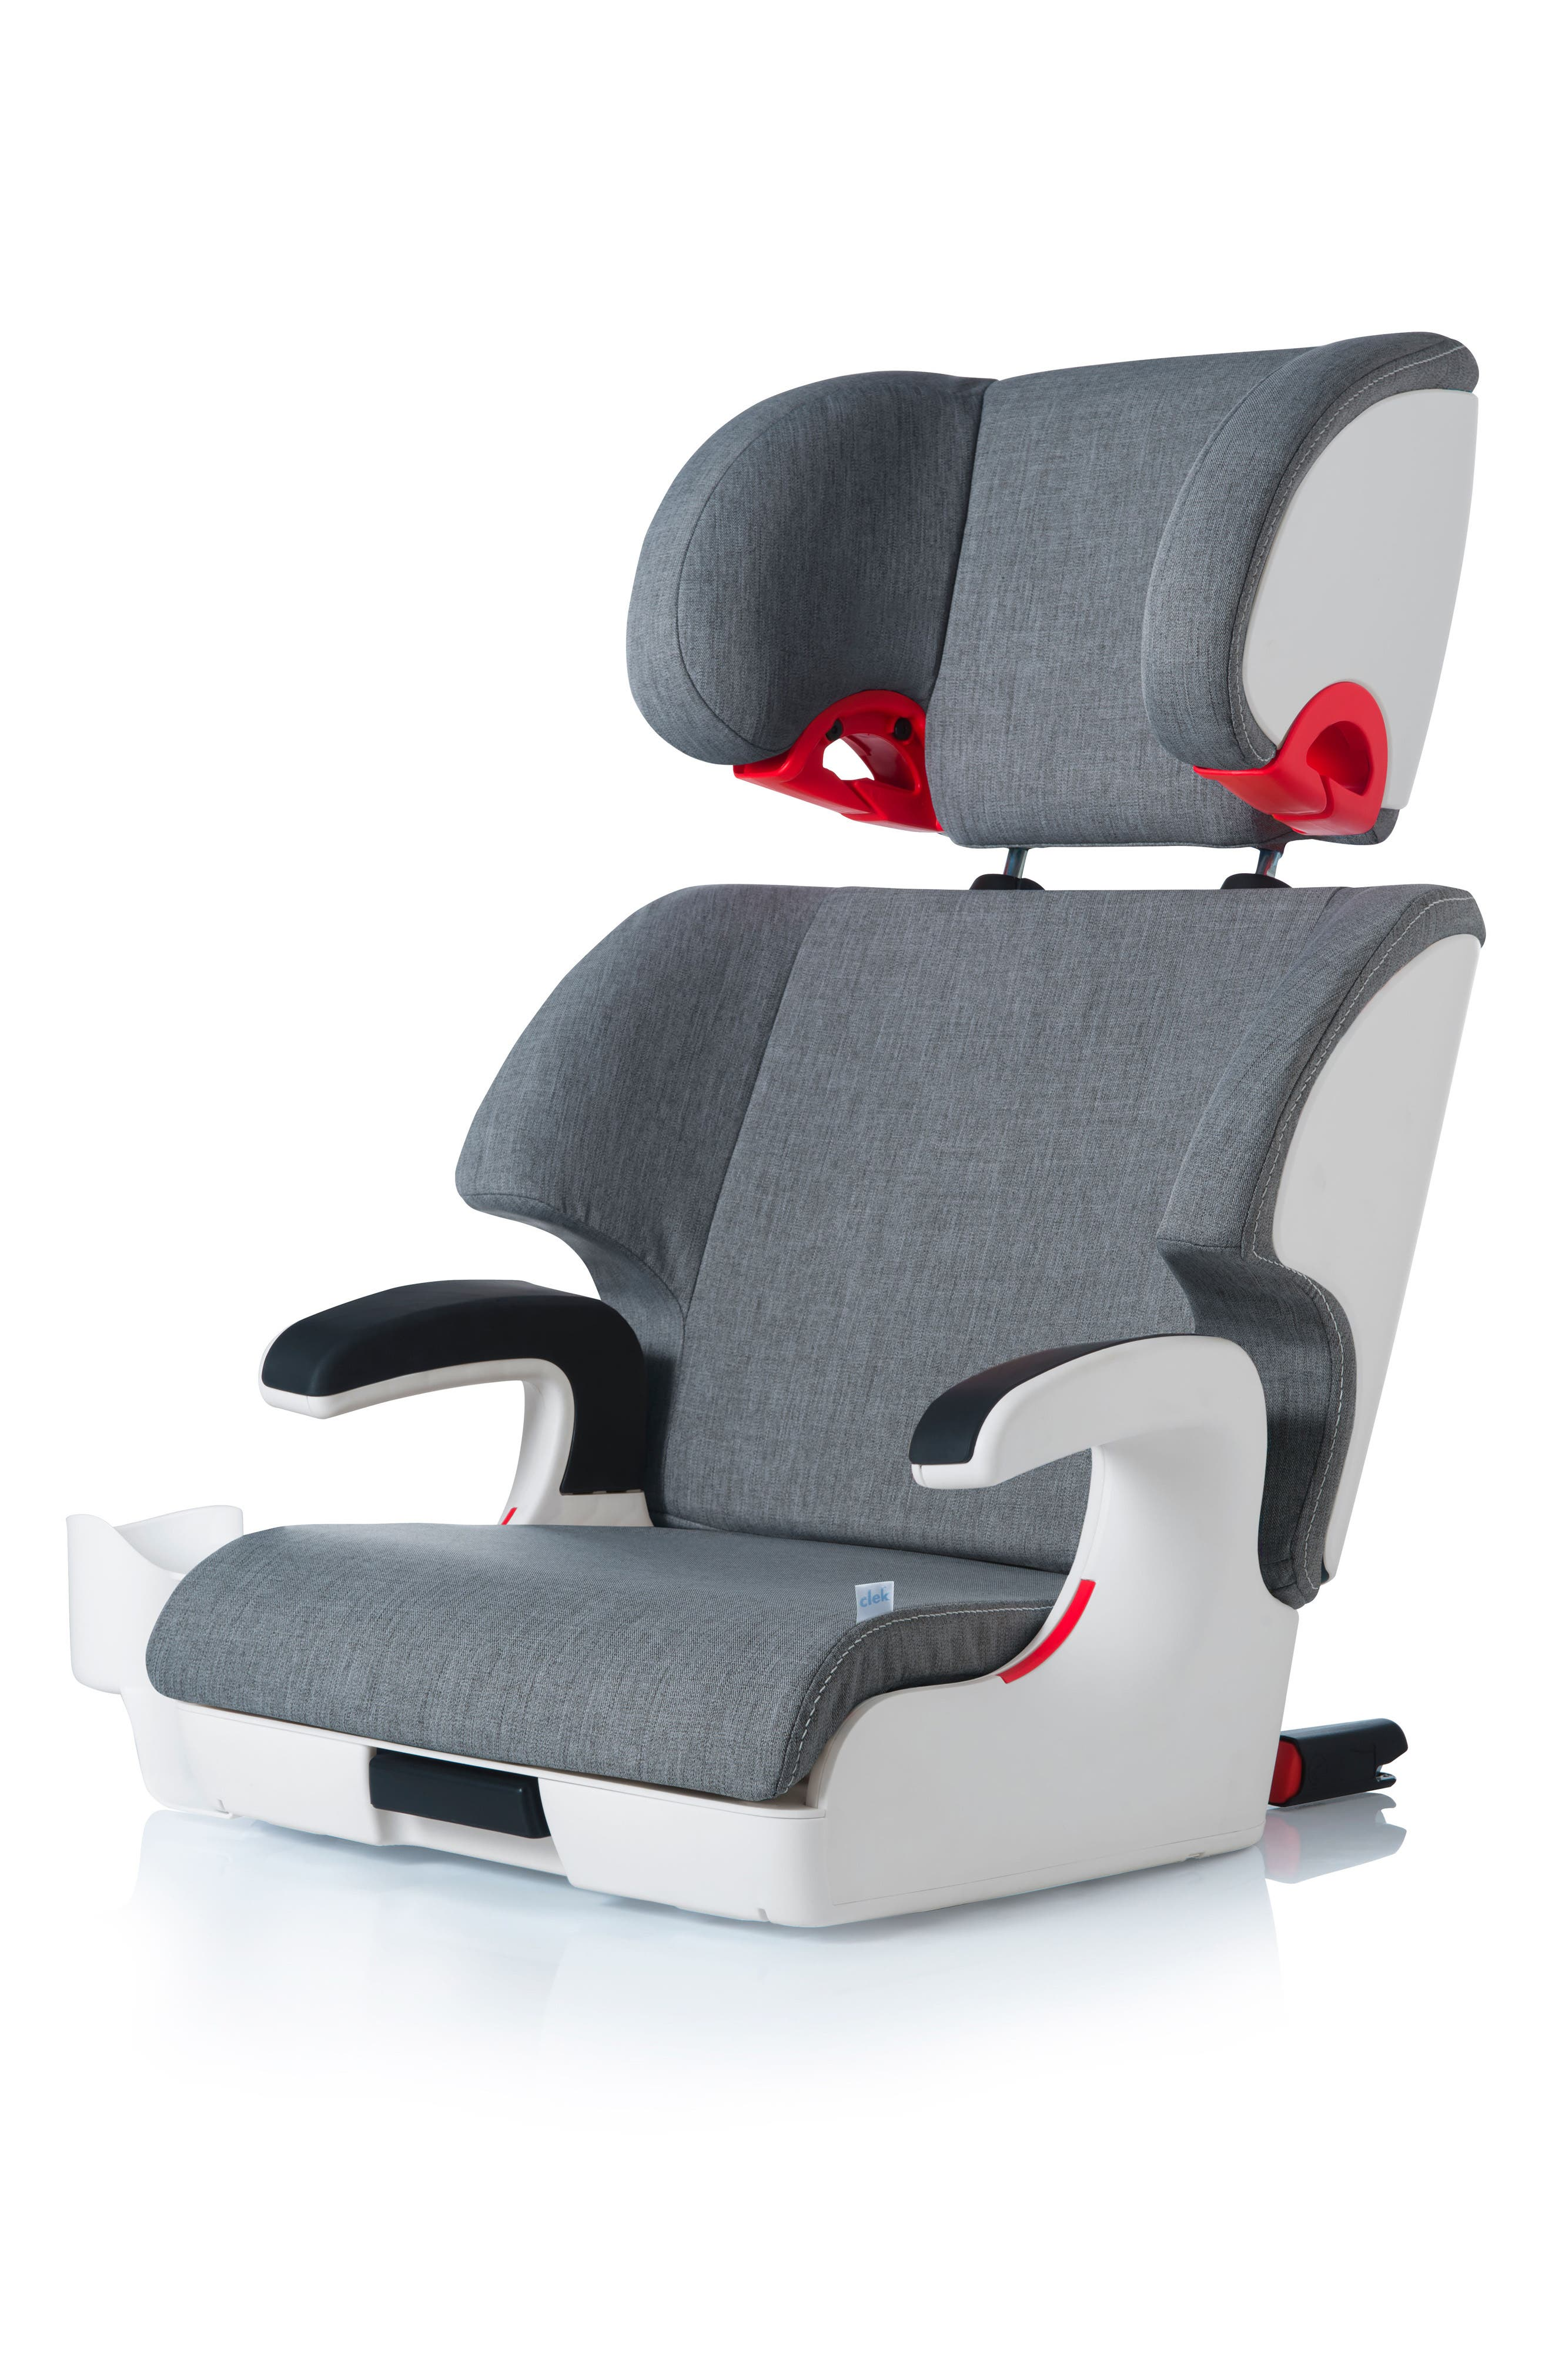 Alternate Image 1 Selected - Clek Oobr Convertible Full Back/Backless Booster Seat